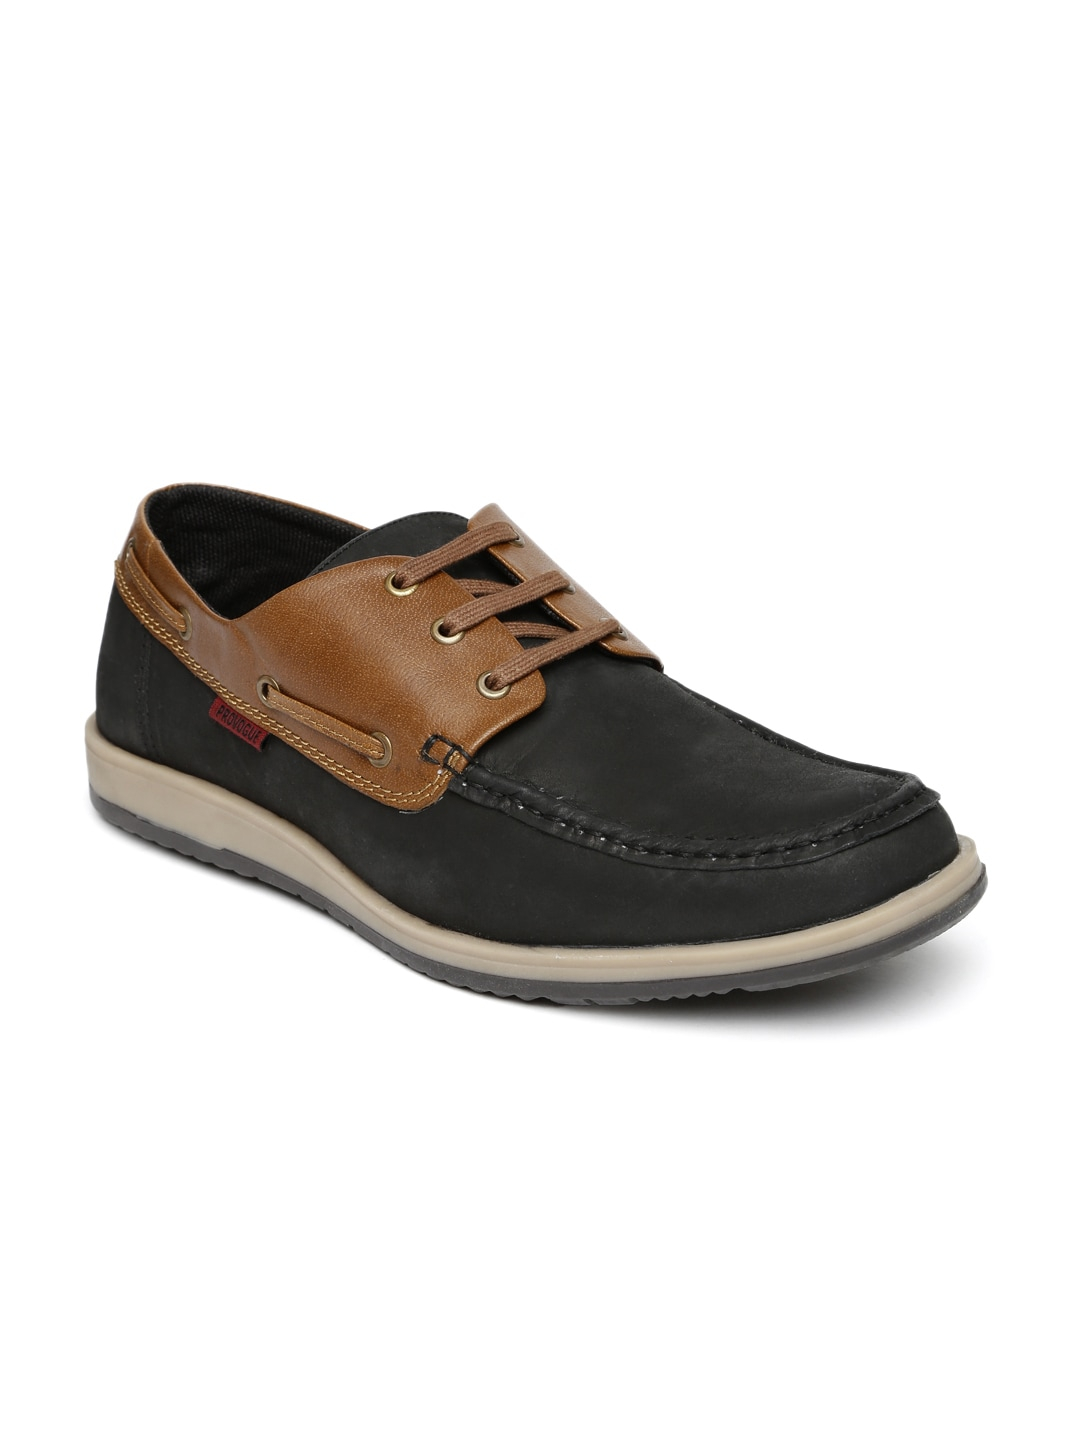 8242c55f7eb Provogue Casual Shoes - Buy Provogue Casual Shoes online in India